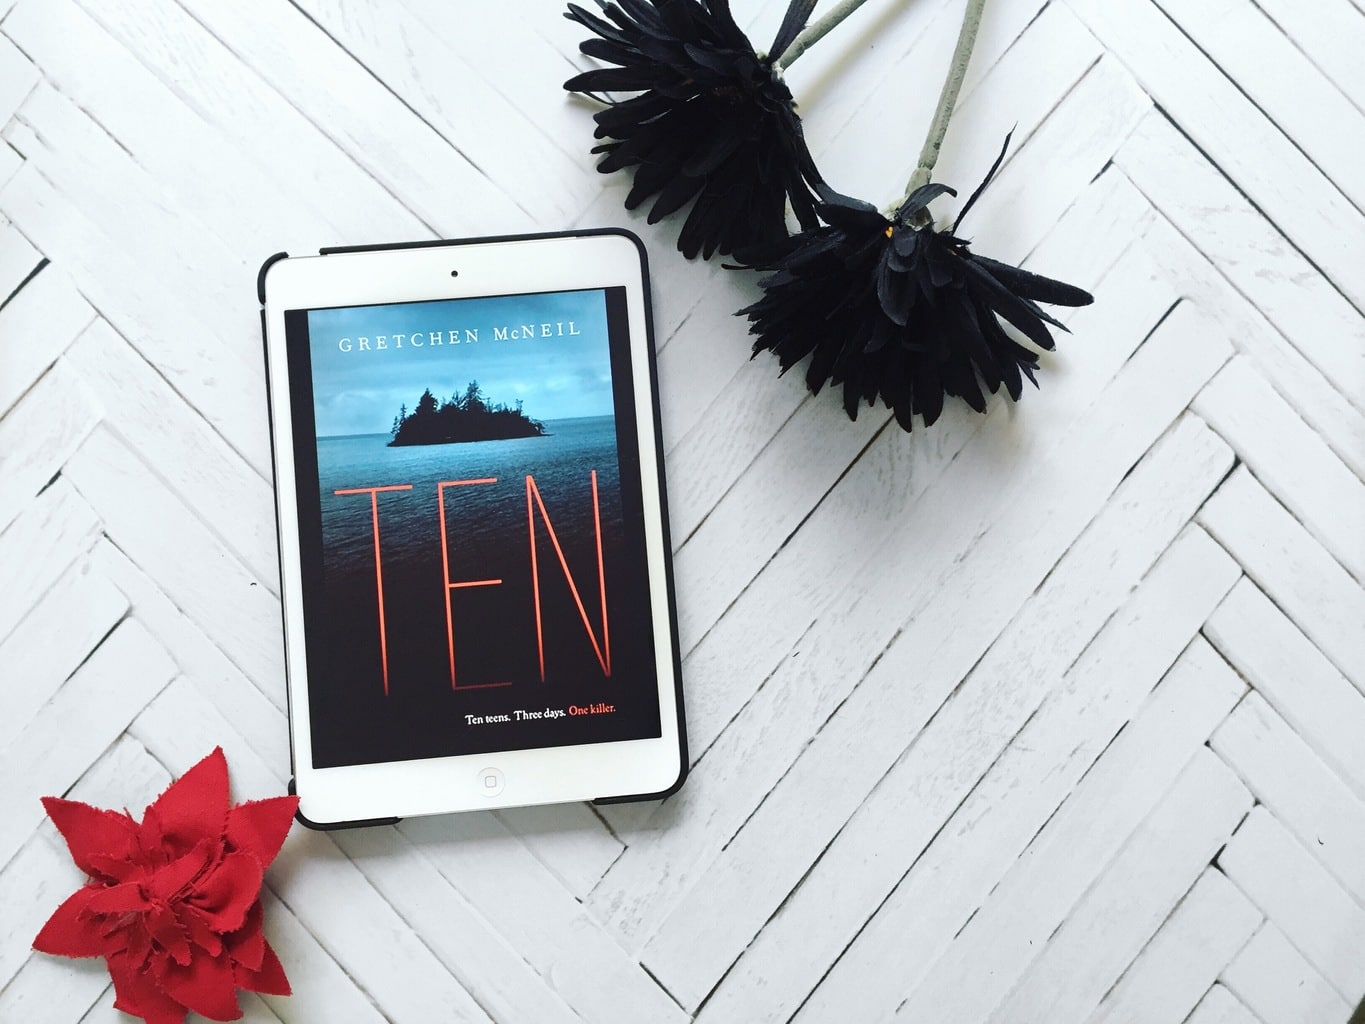 Rave Guest Review: Ten by Gretchen McNeil